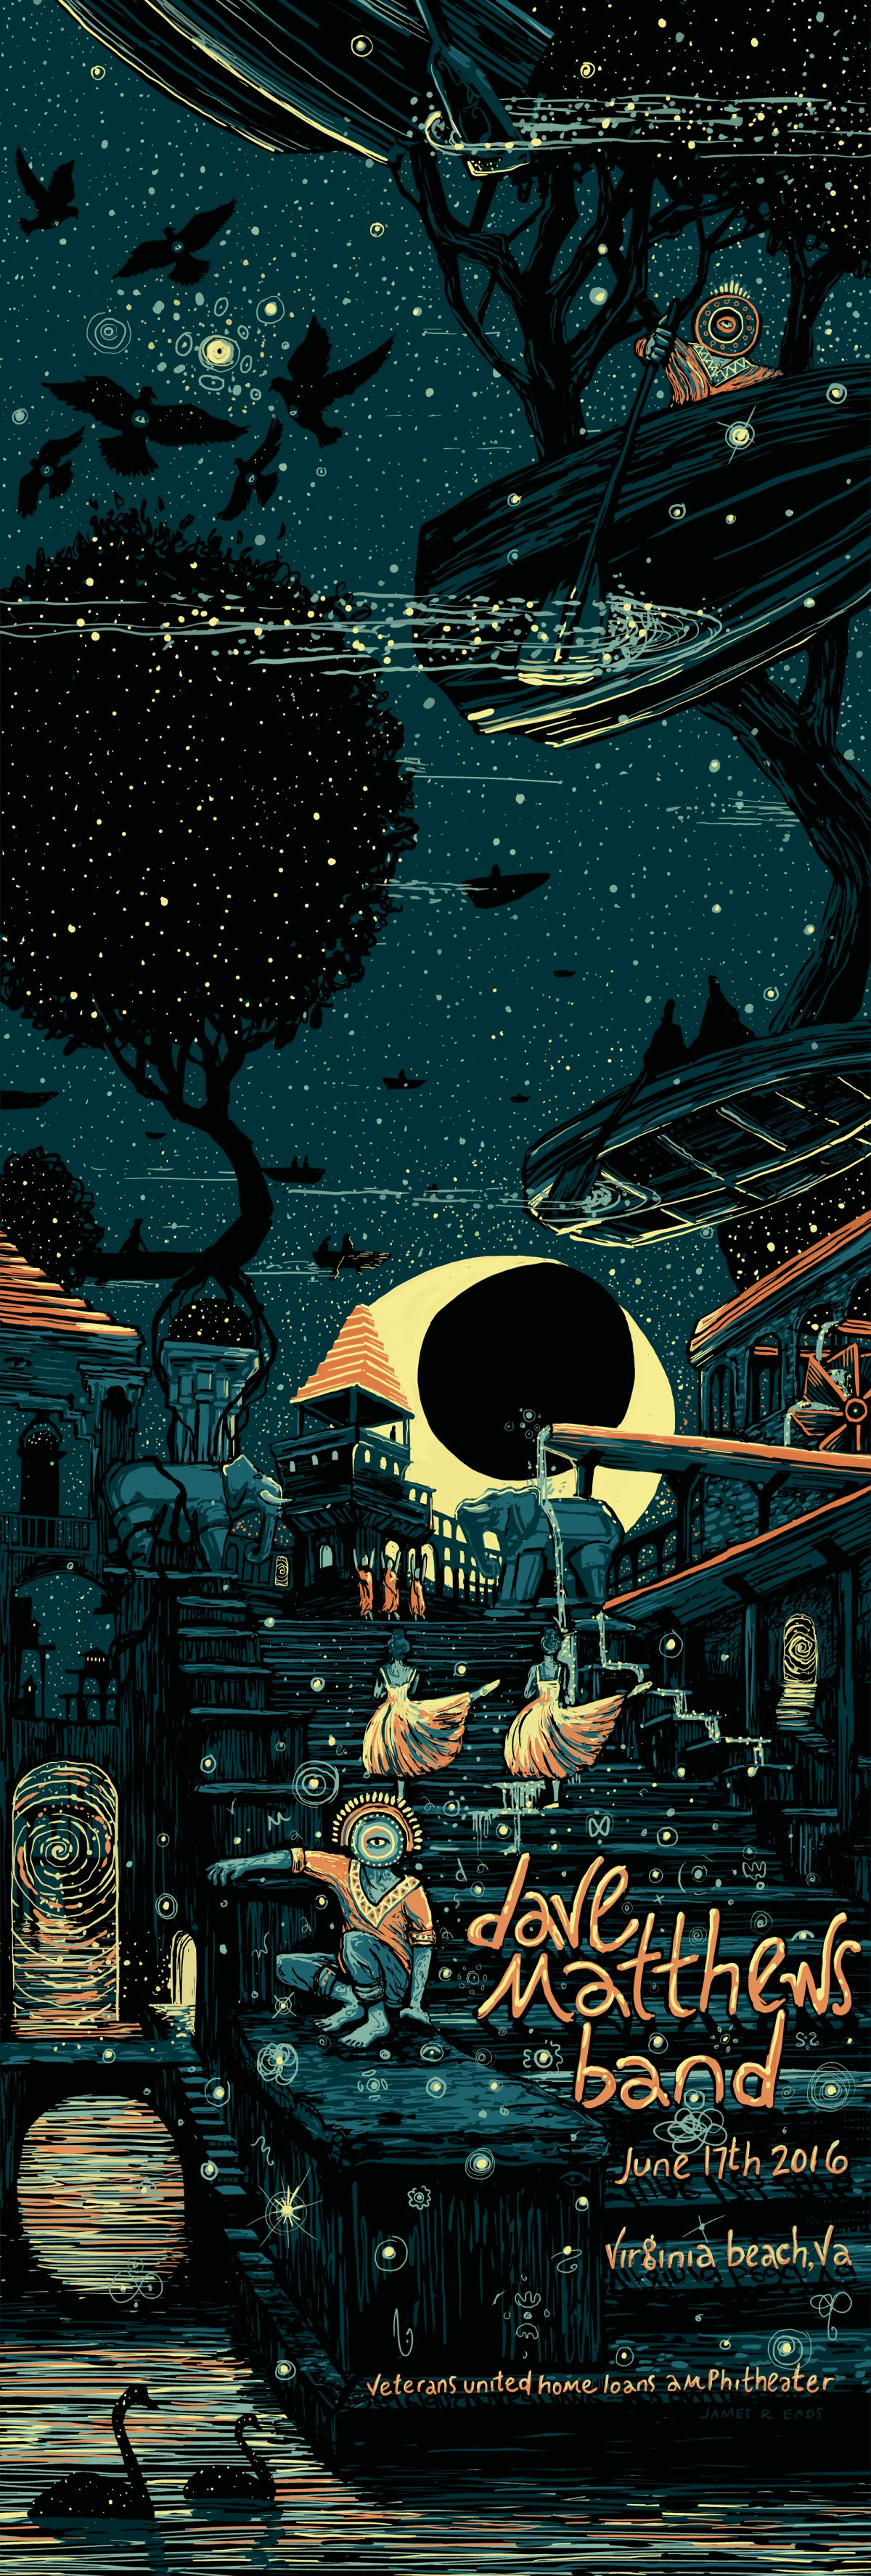 """Dave Matthews Band - Virginia Beach, VA 2016"" by James R Eads.  12"" x 36"" 5-color Screenprint.  AP edition of 60 S/N.  $65"